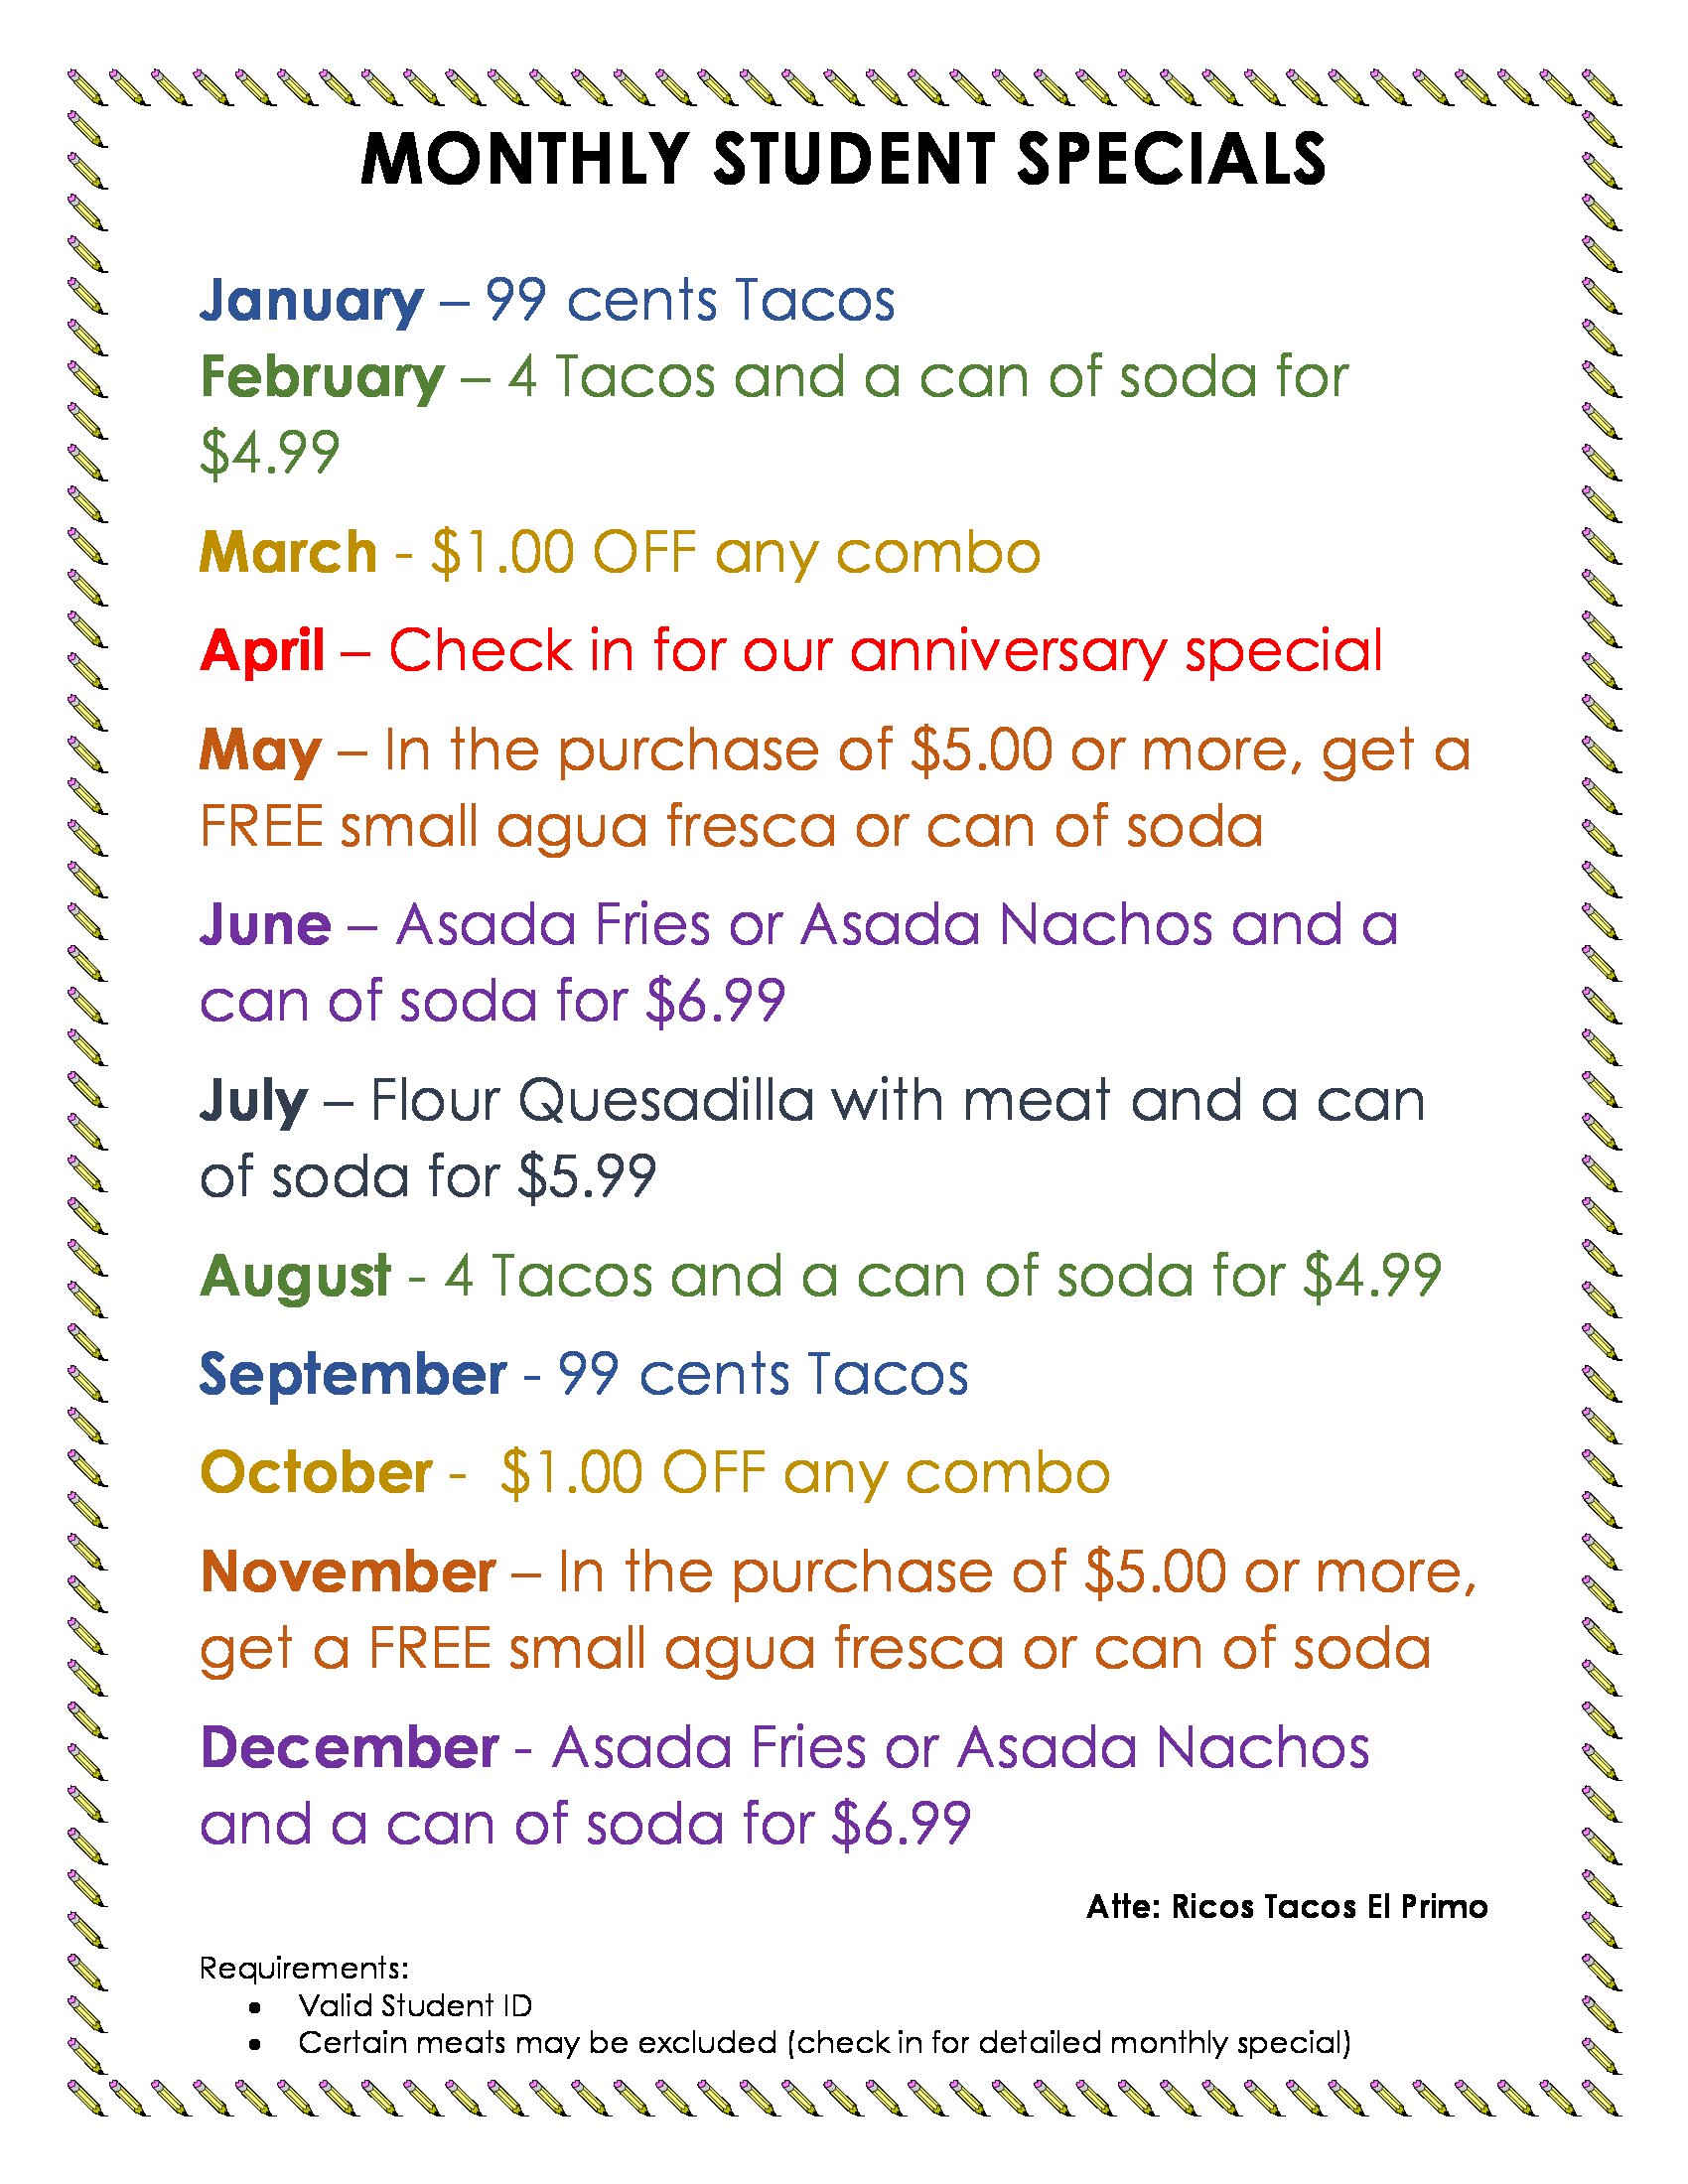 Ricos-Tacos-El-Primo-monthly-student-special